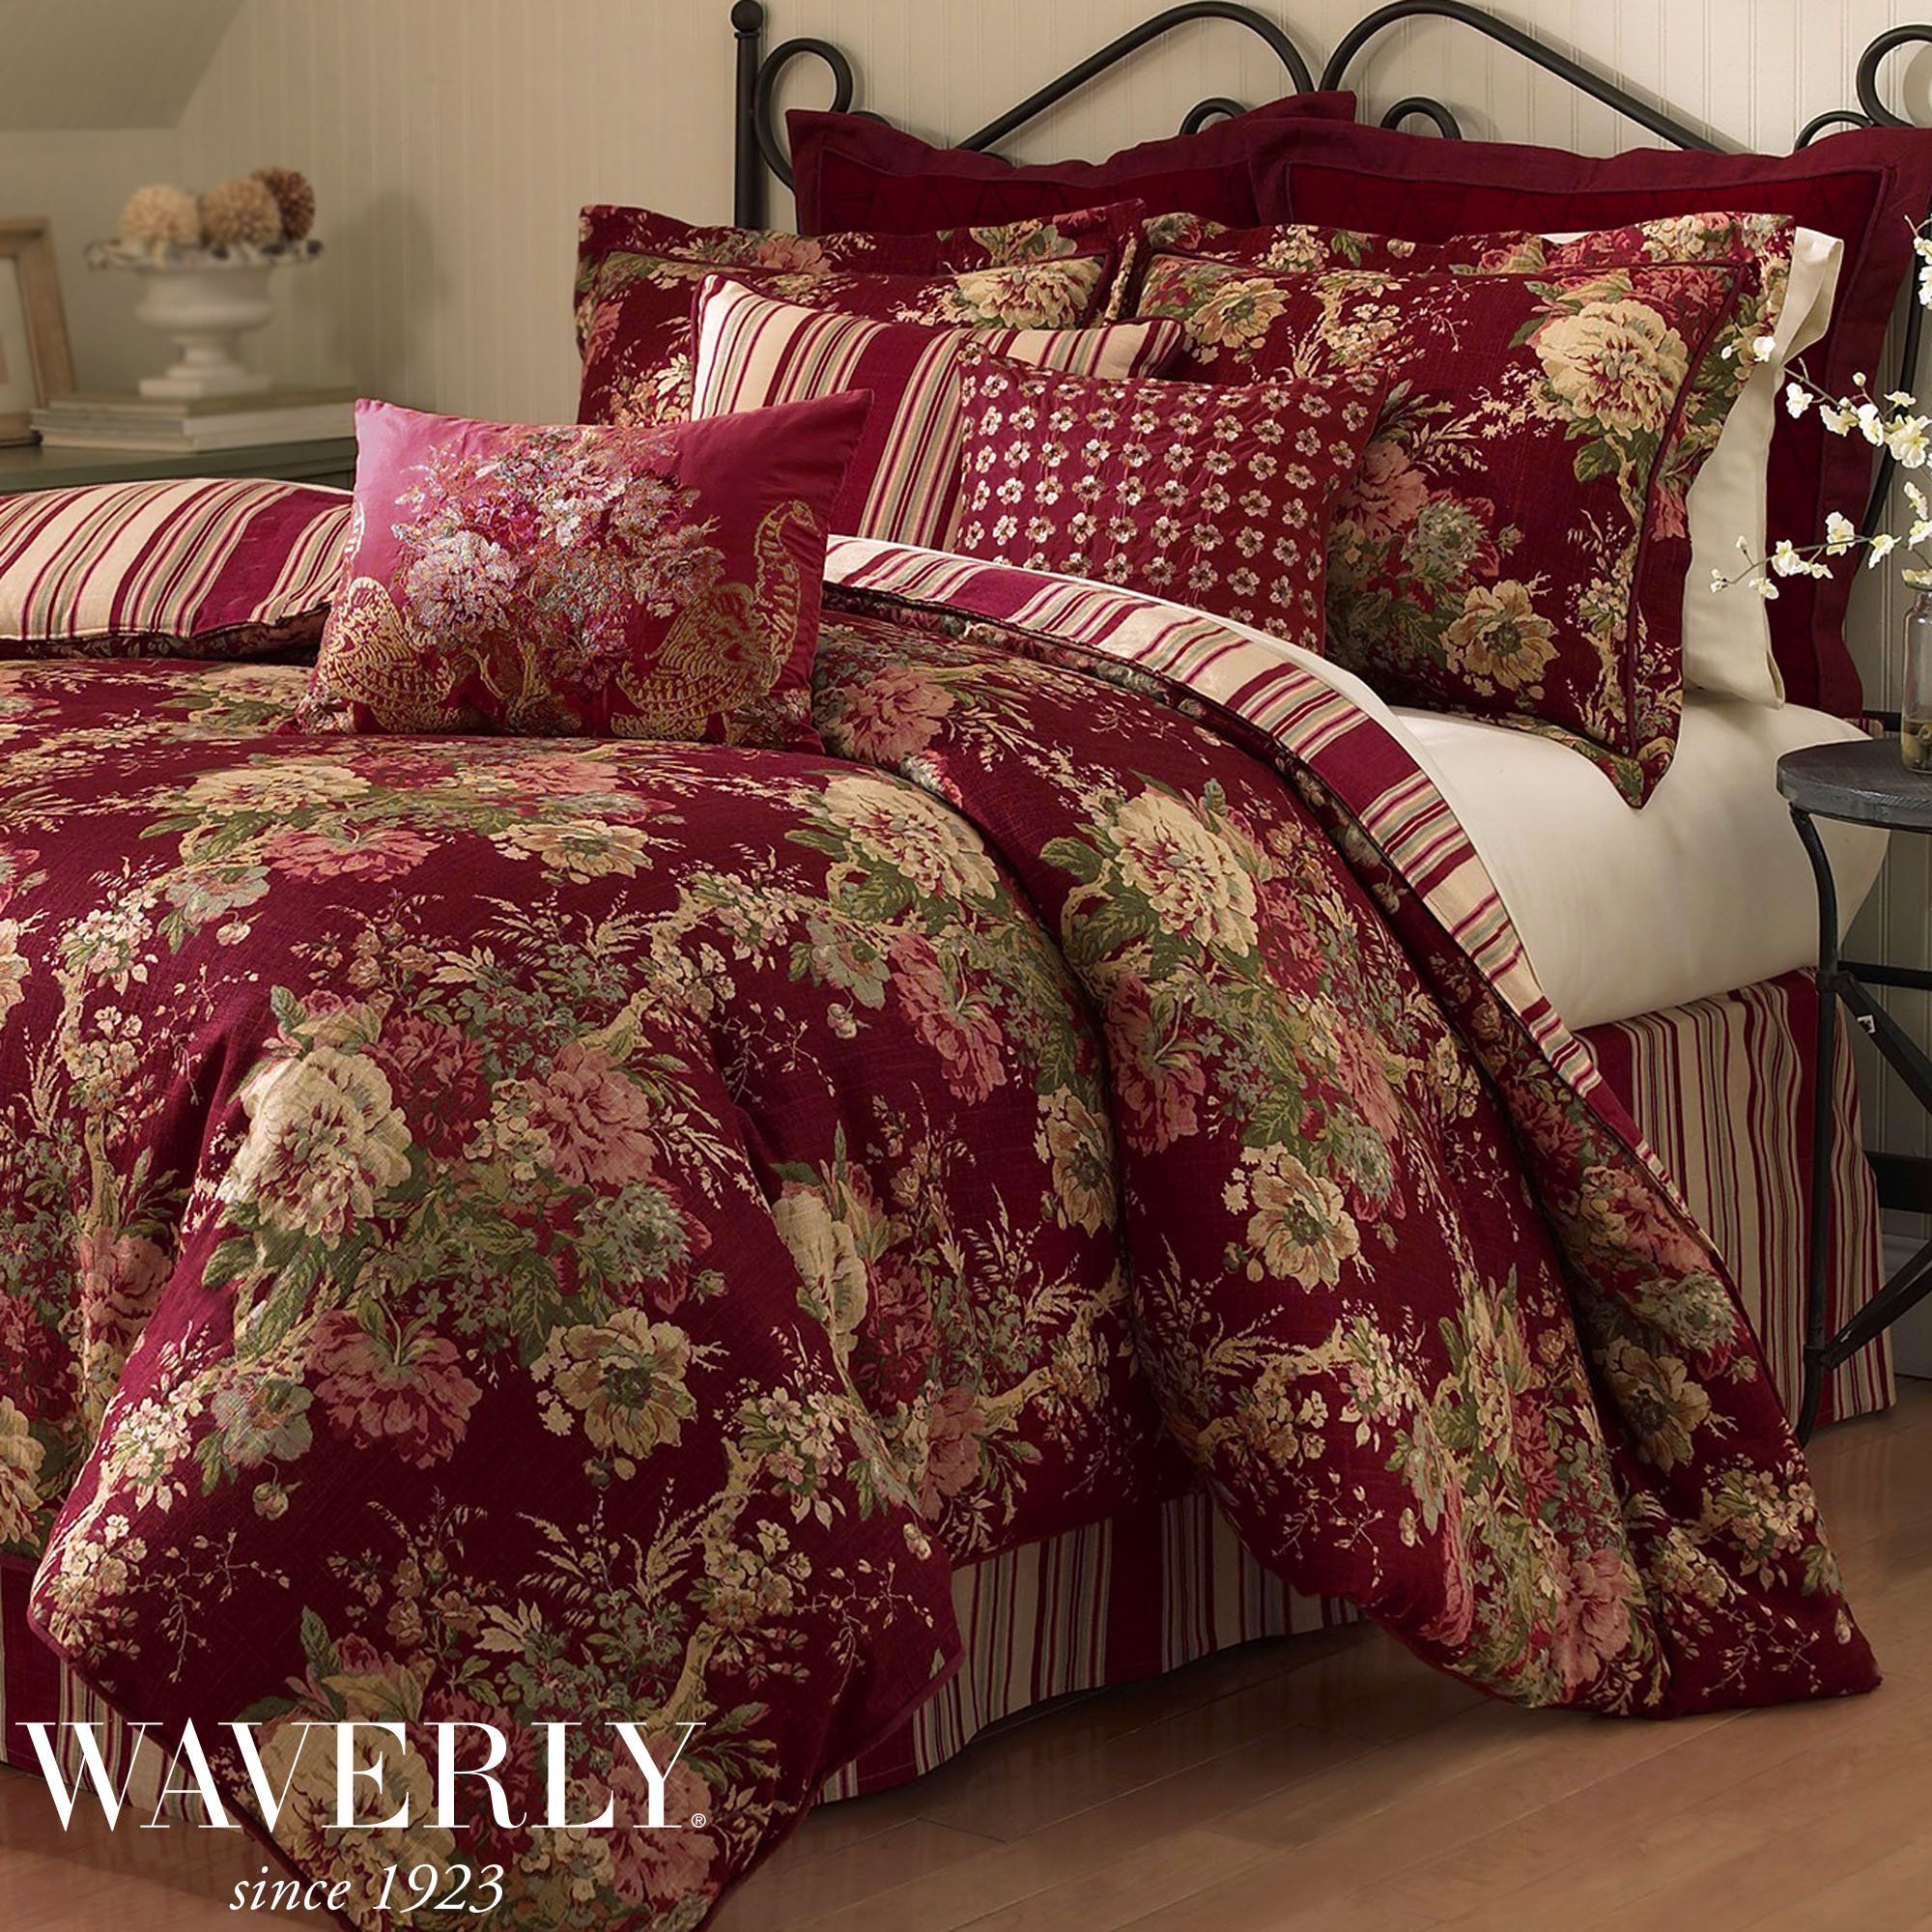 waverly bedspreads and comforters | Home > Ballad Bouquet ...